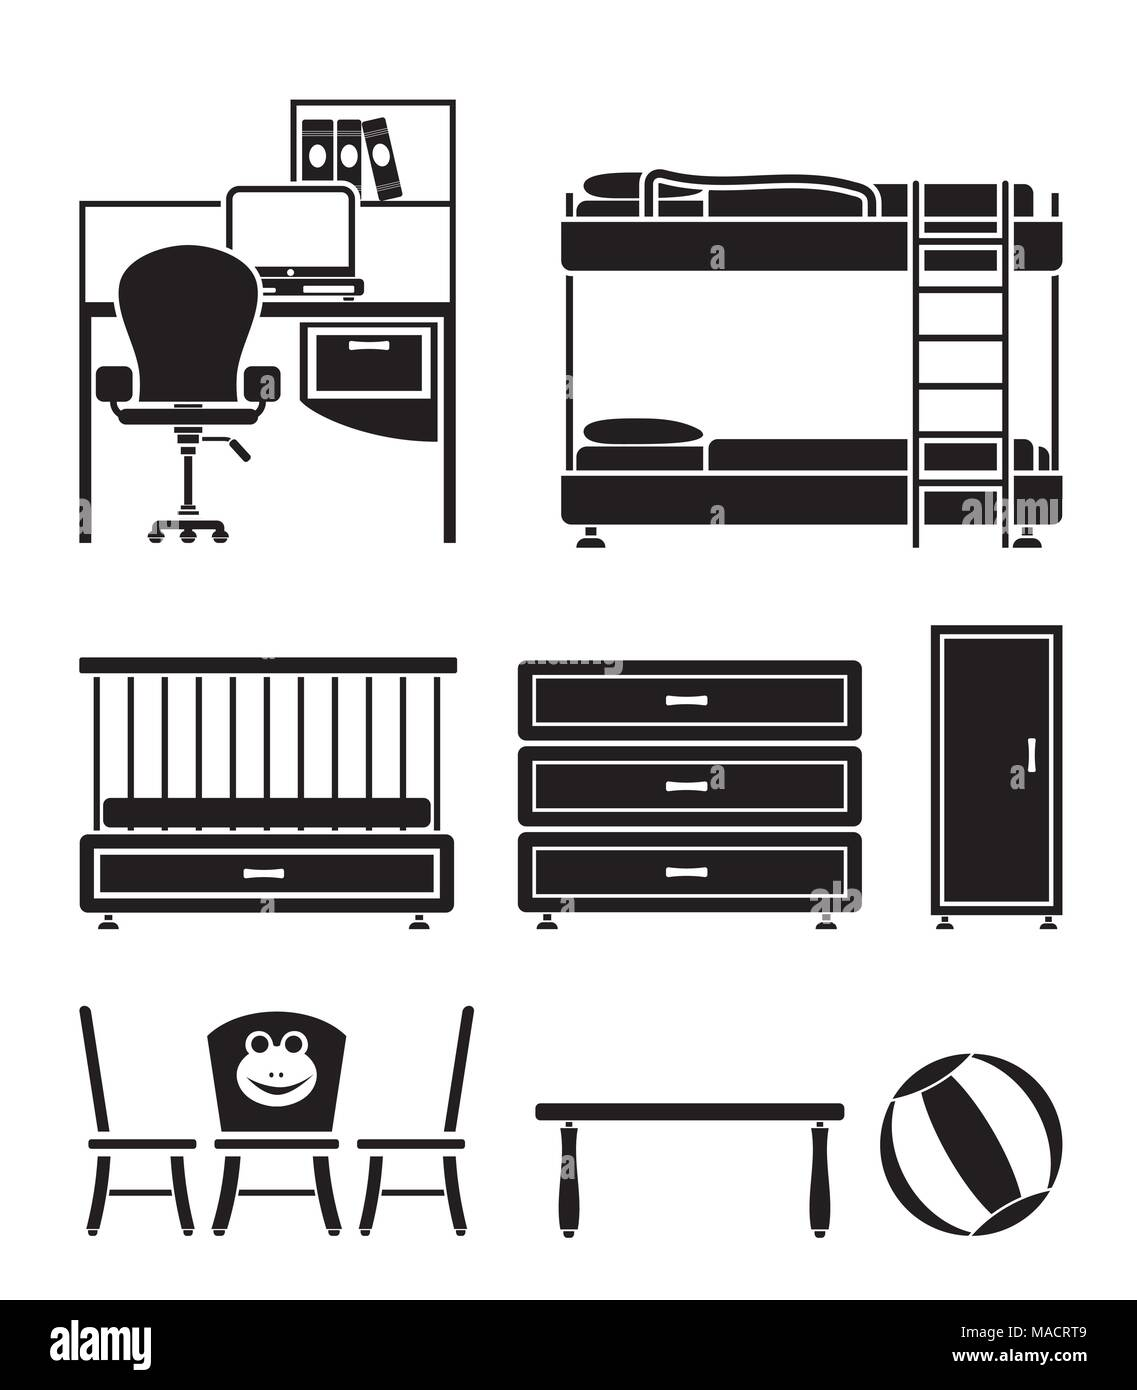 nursery and children room objects, furniture and equipment - vector illustration Stock Vector